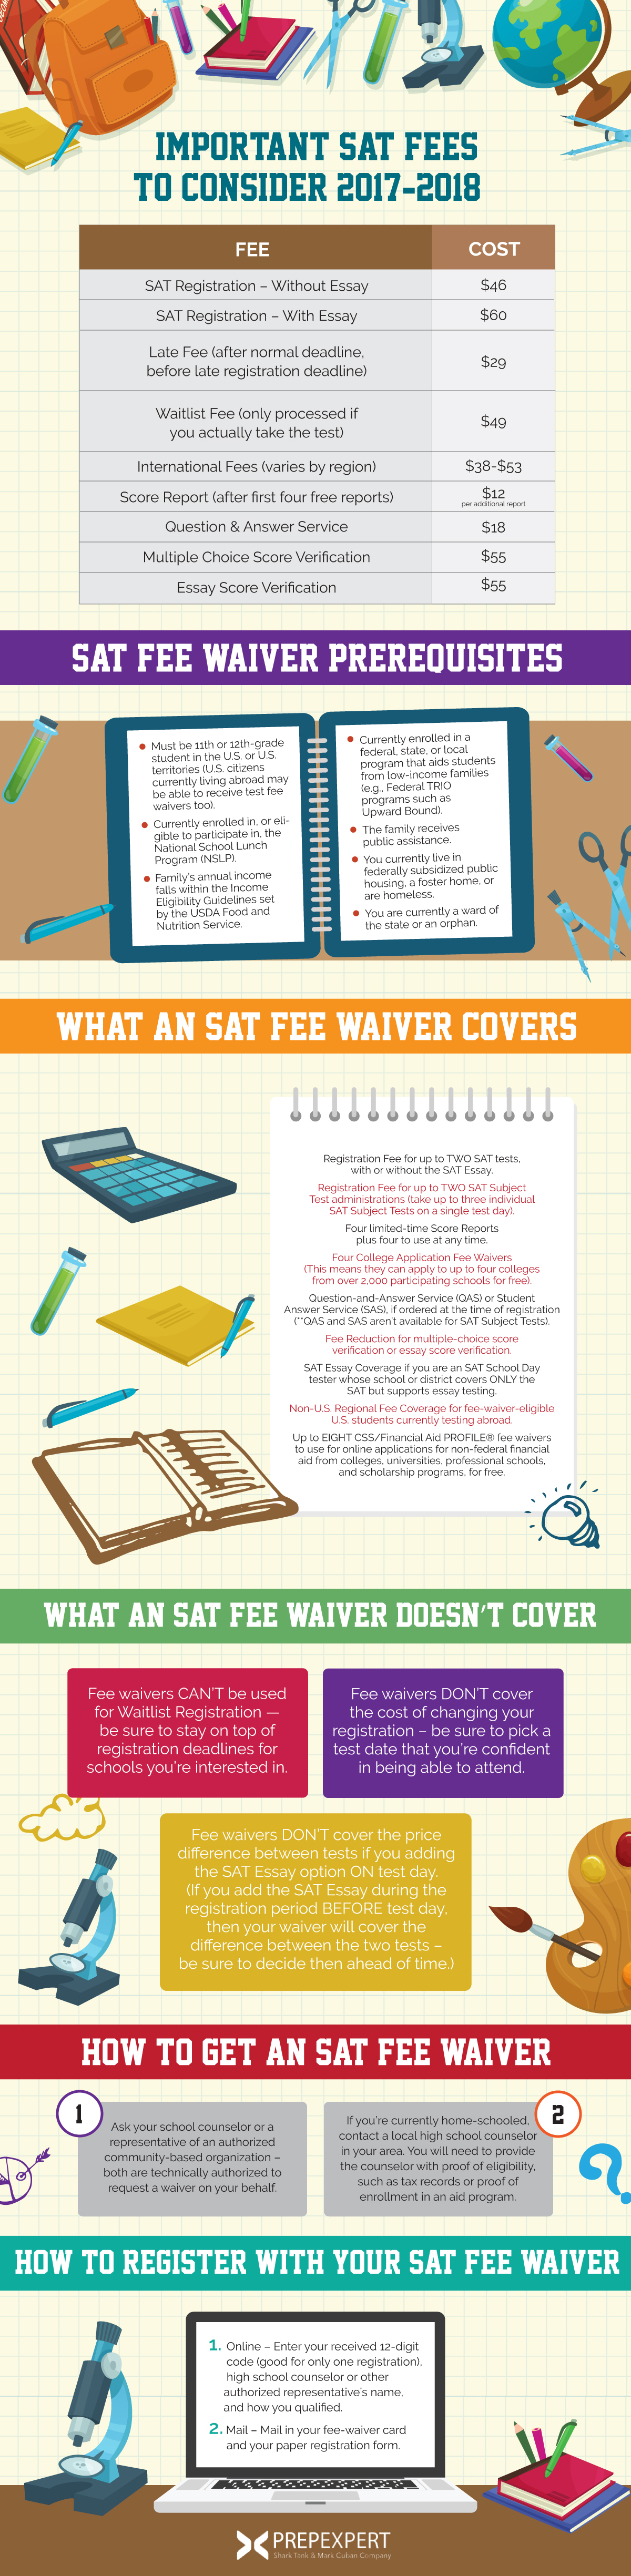 SAT Fee Waiver Guide | Prep Expert